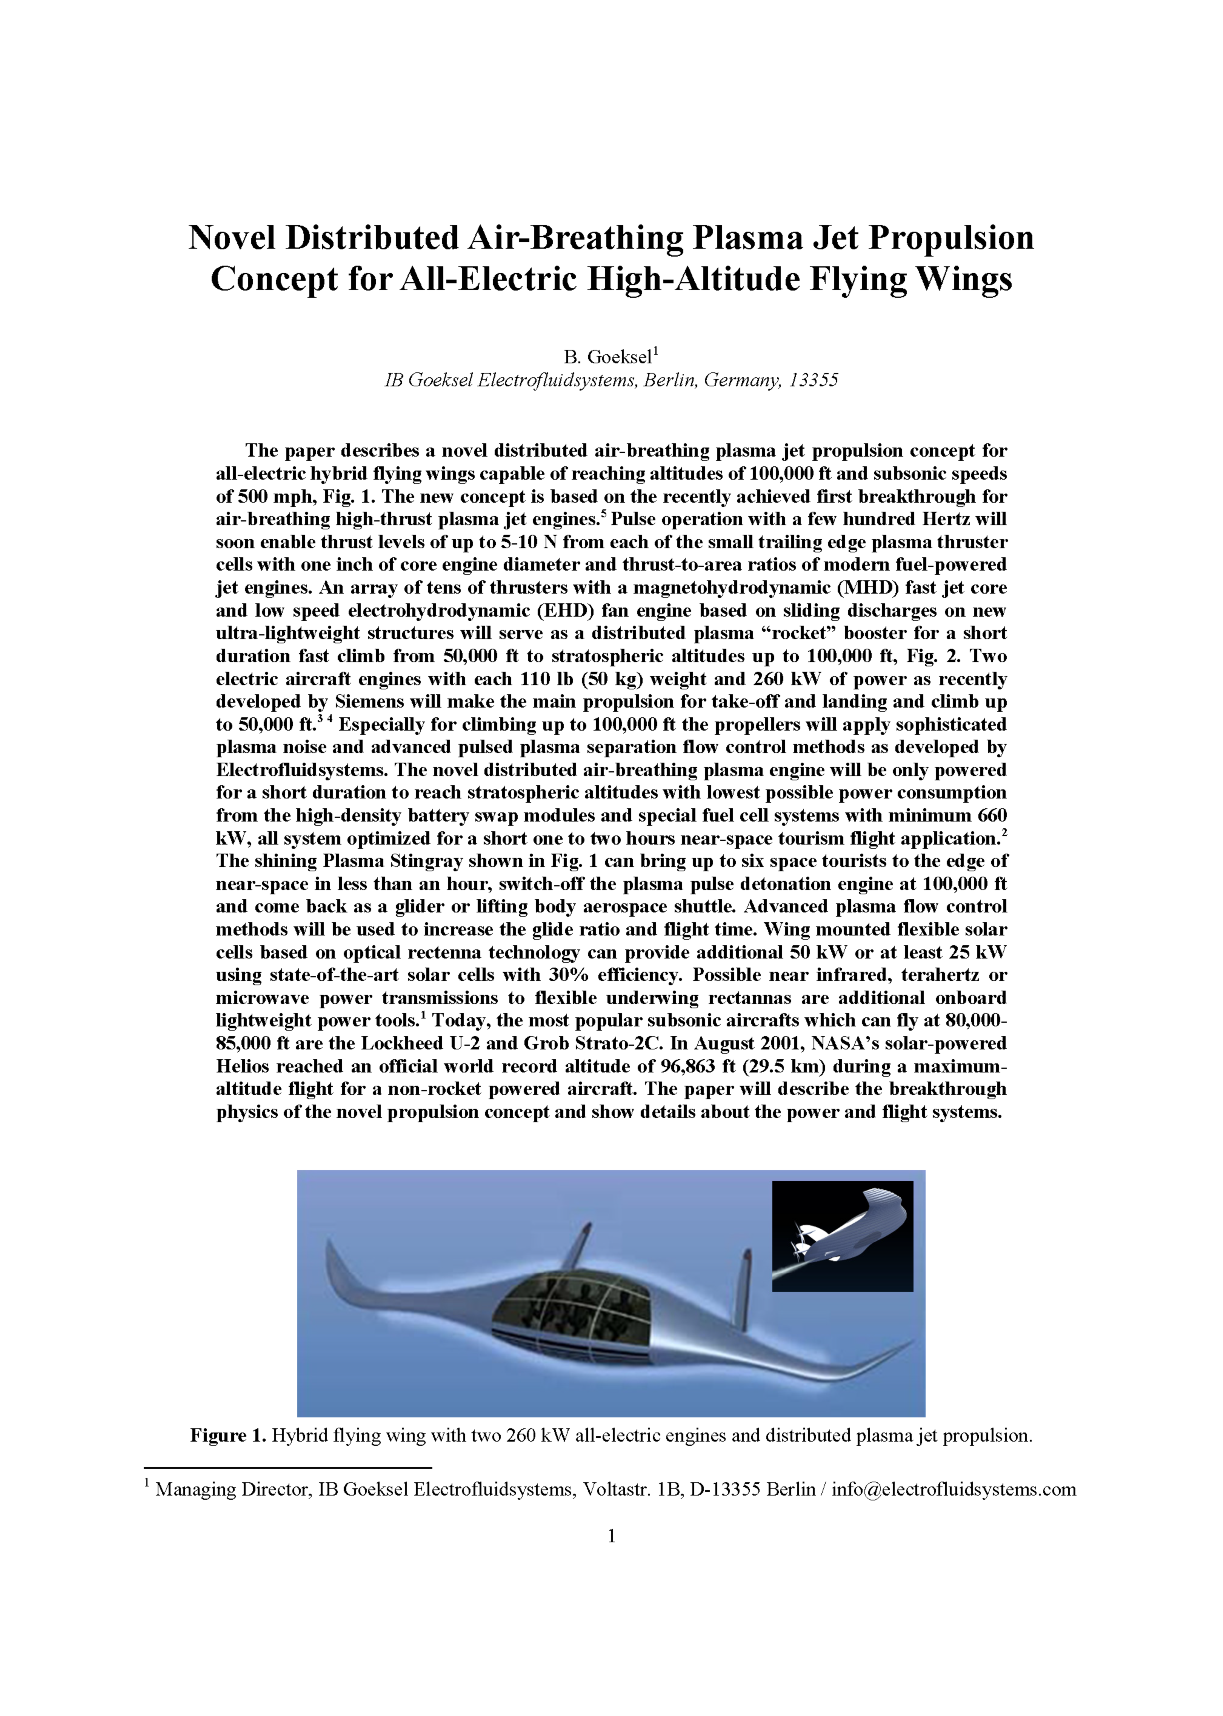 B. Göksel (2018) Novel Distributed Air-Breathing Plasma Jet Propulsion Concept for All-Electric High-Altitude Flying Wings.